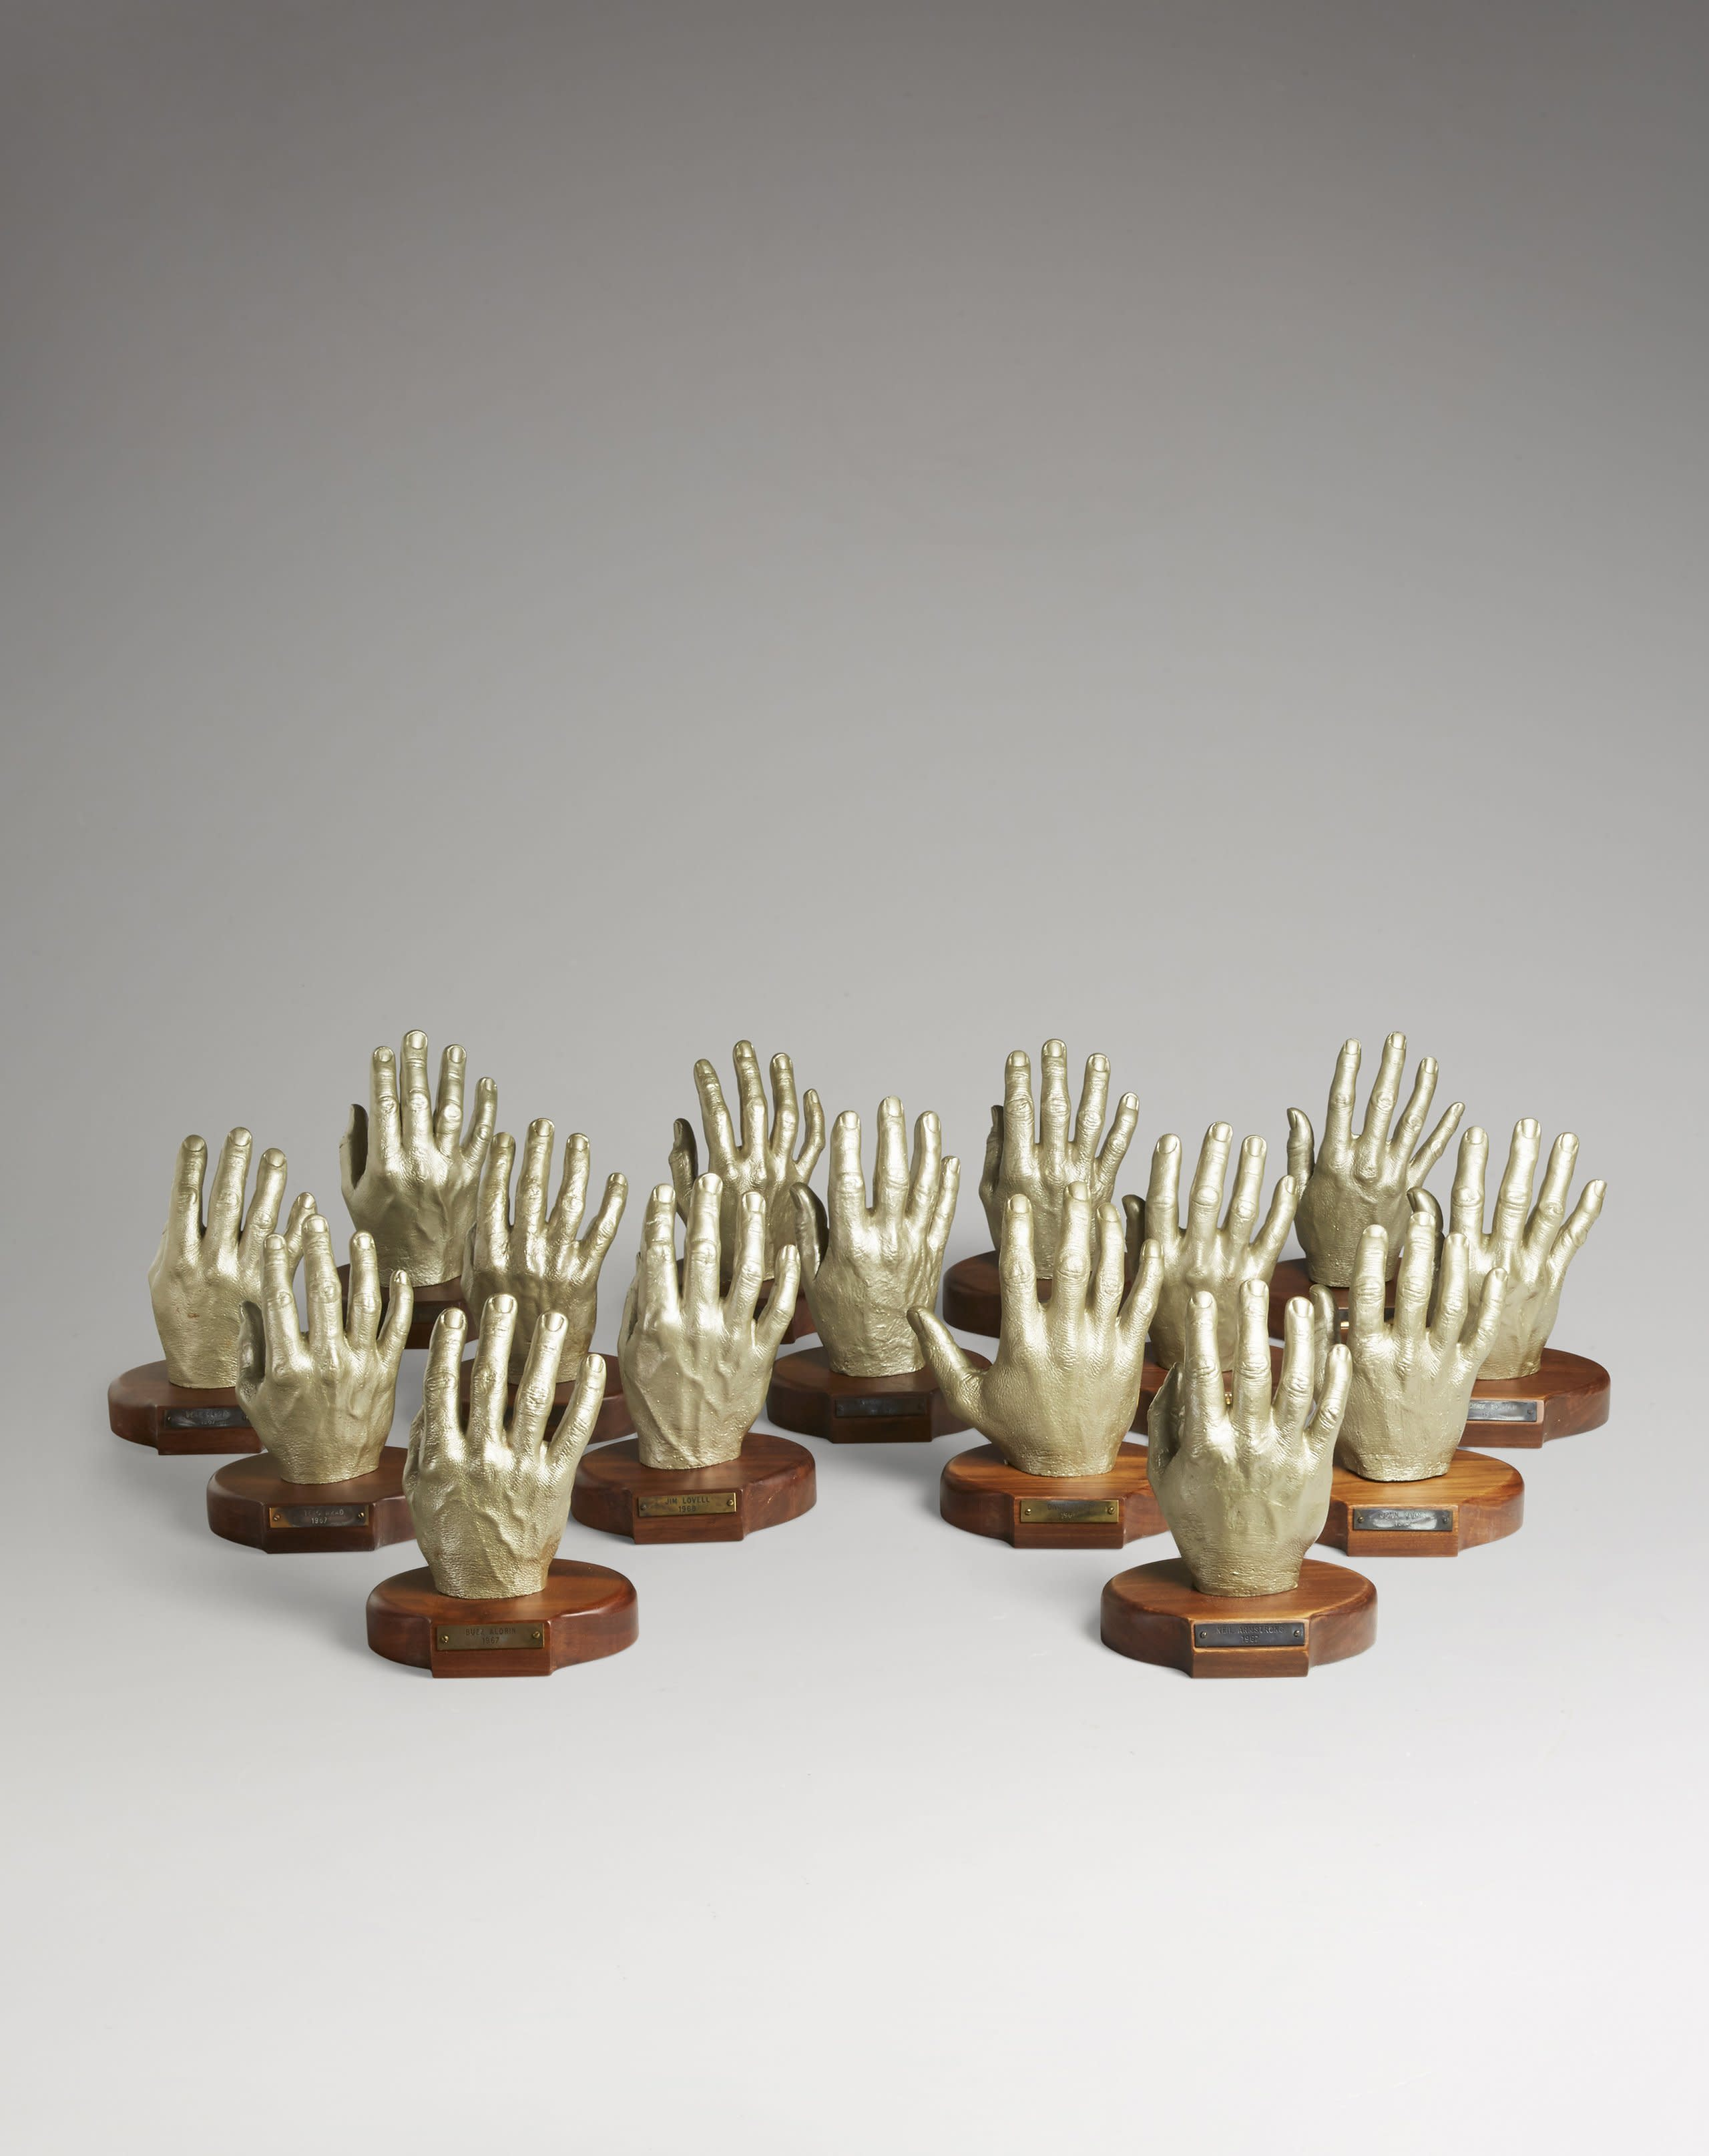 A collection of plaster casts of the right hands of 15 NASA astronauts, including Neil Armstrong and Buzz Aldrin. The molds were used to make each astronaut's space suit gloves.